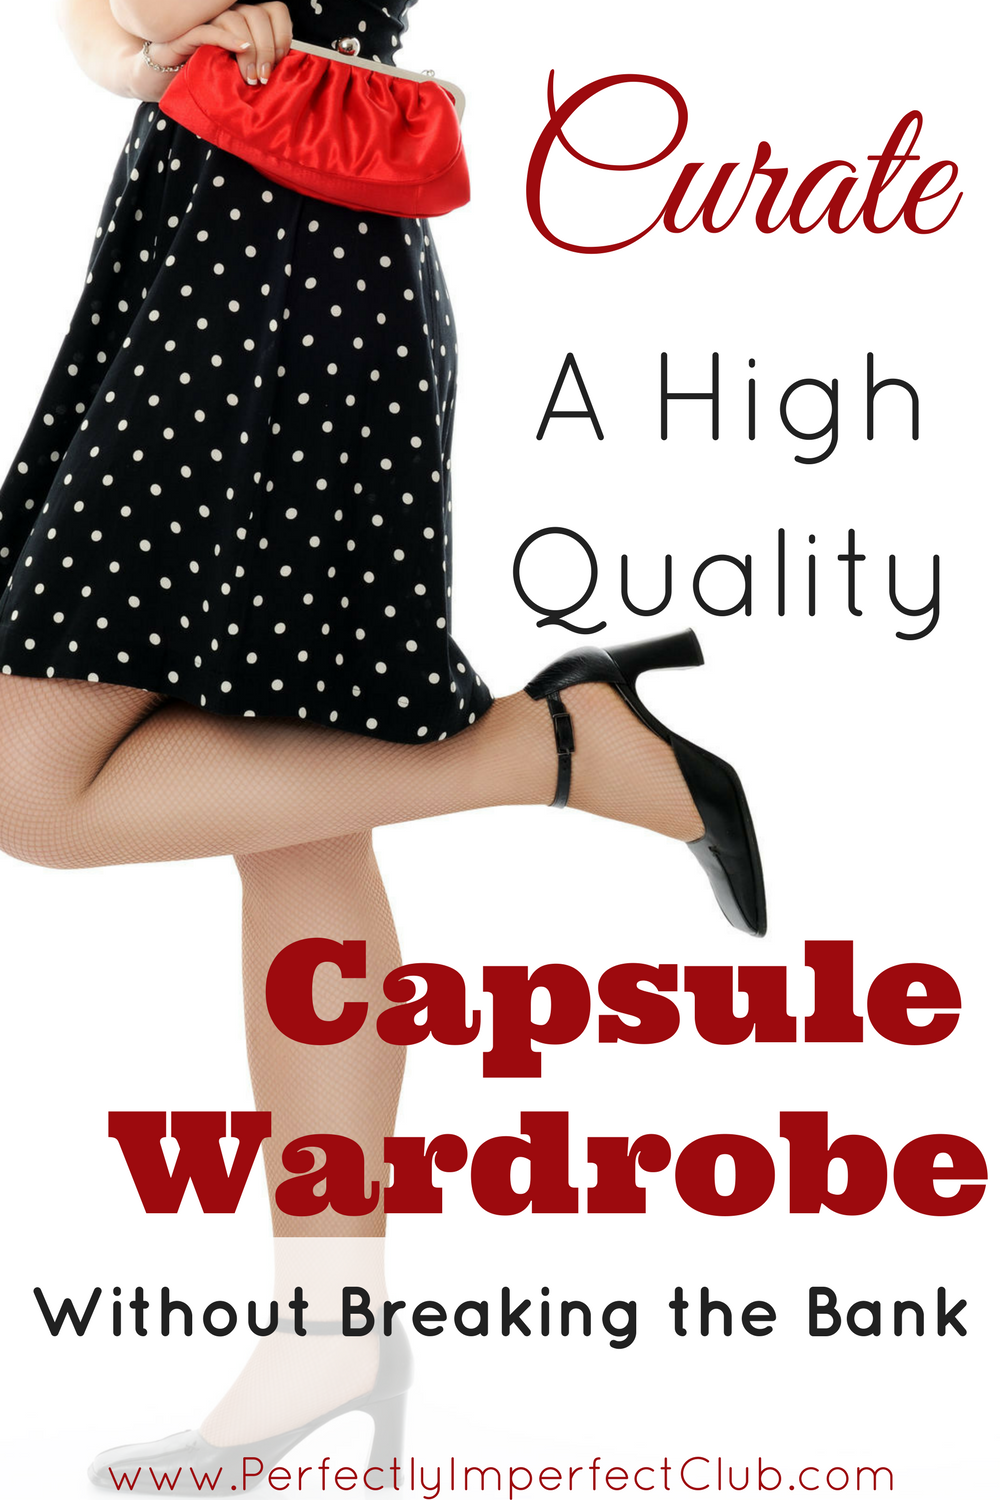 Curate A High Quality Capsule Wardrobe